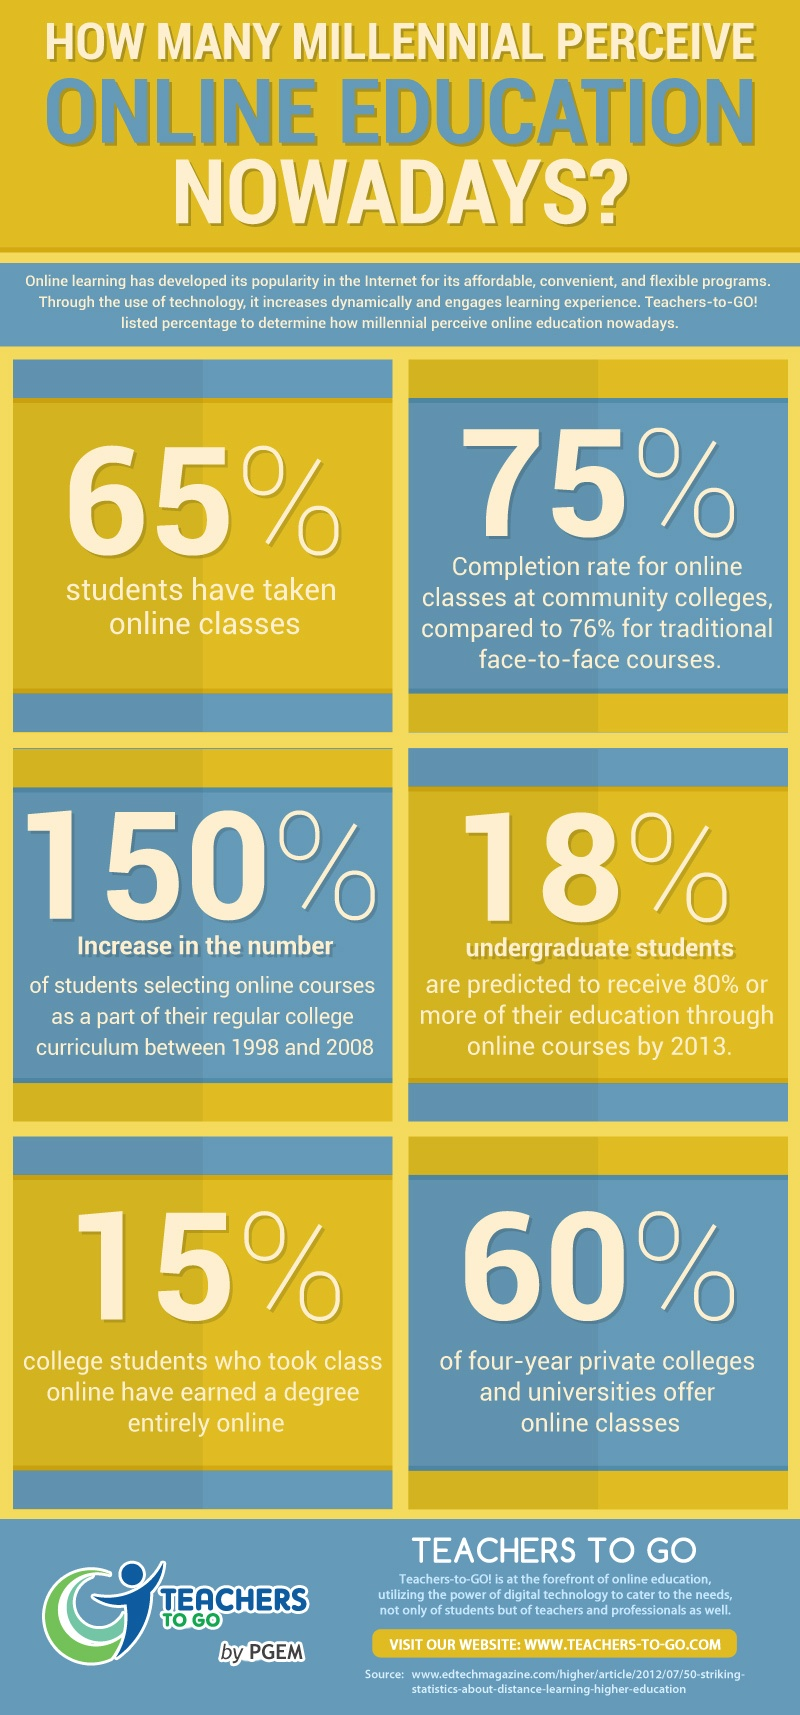 How Many Millennial Perceive Online Education Nowadays Infographic